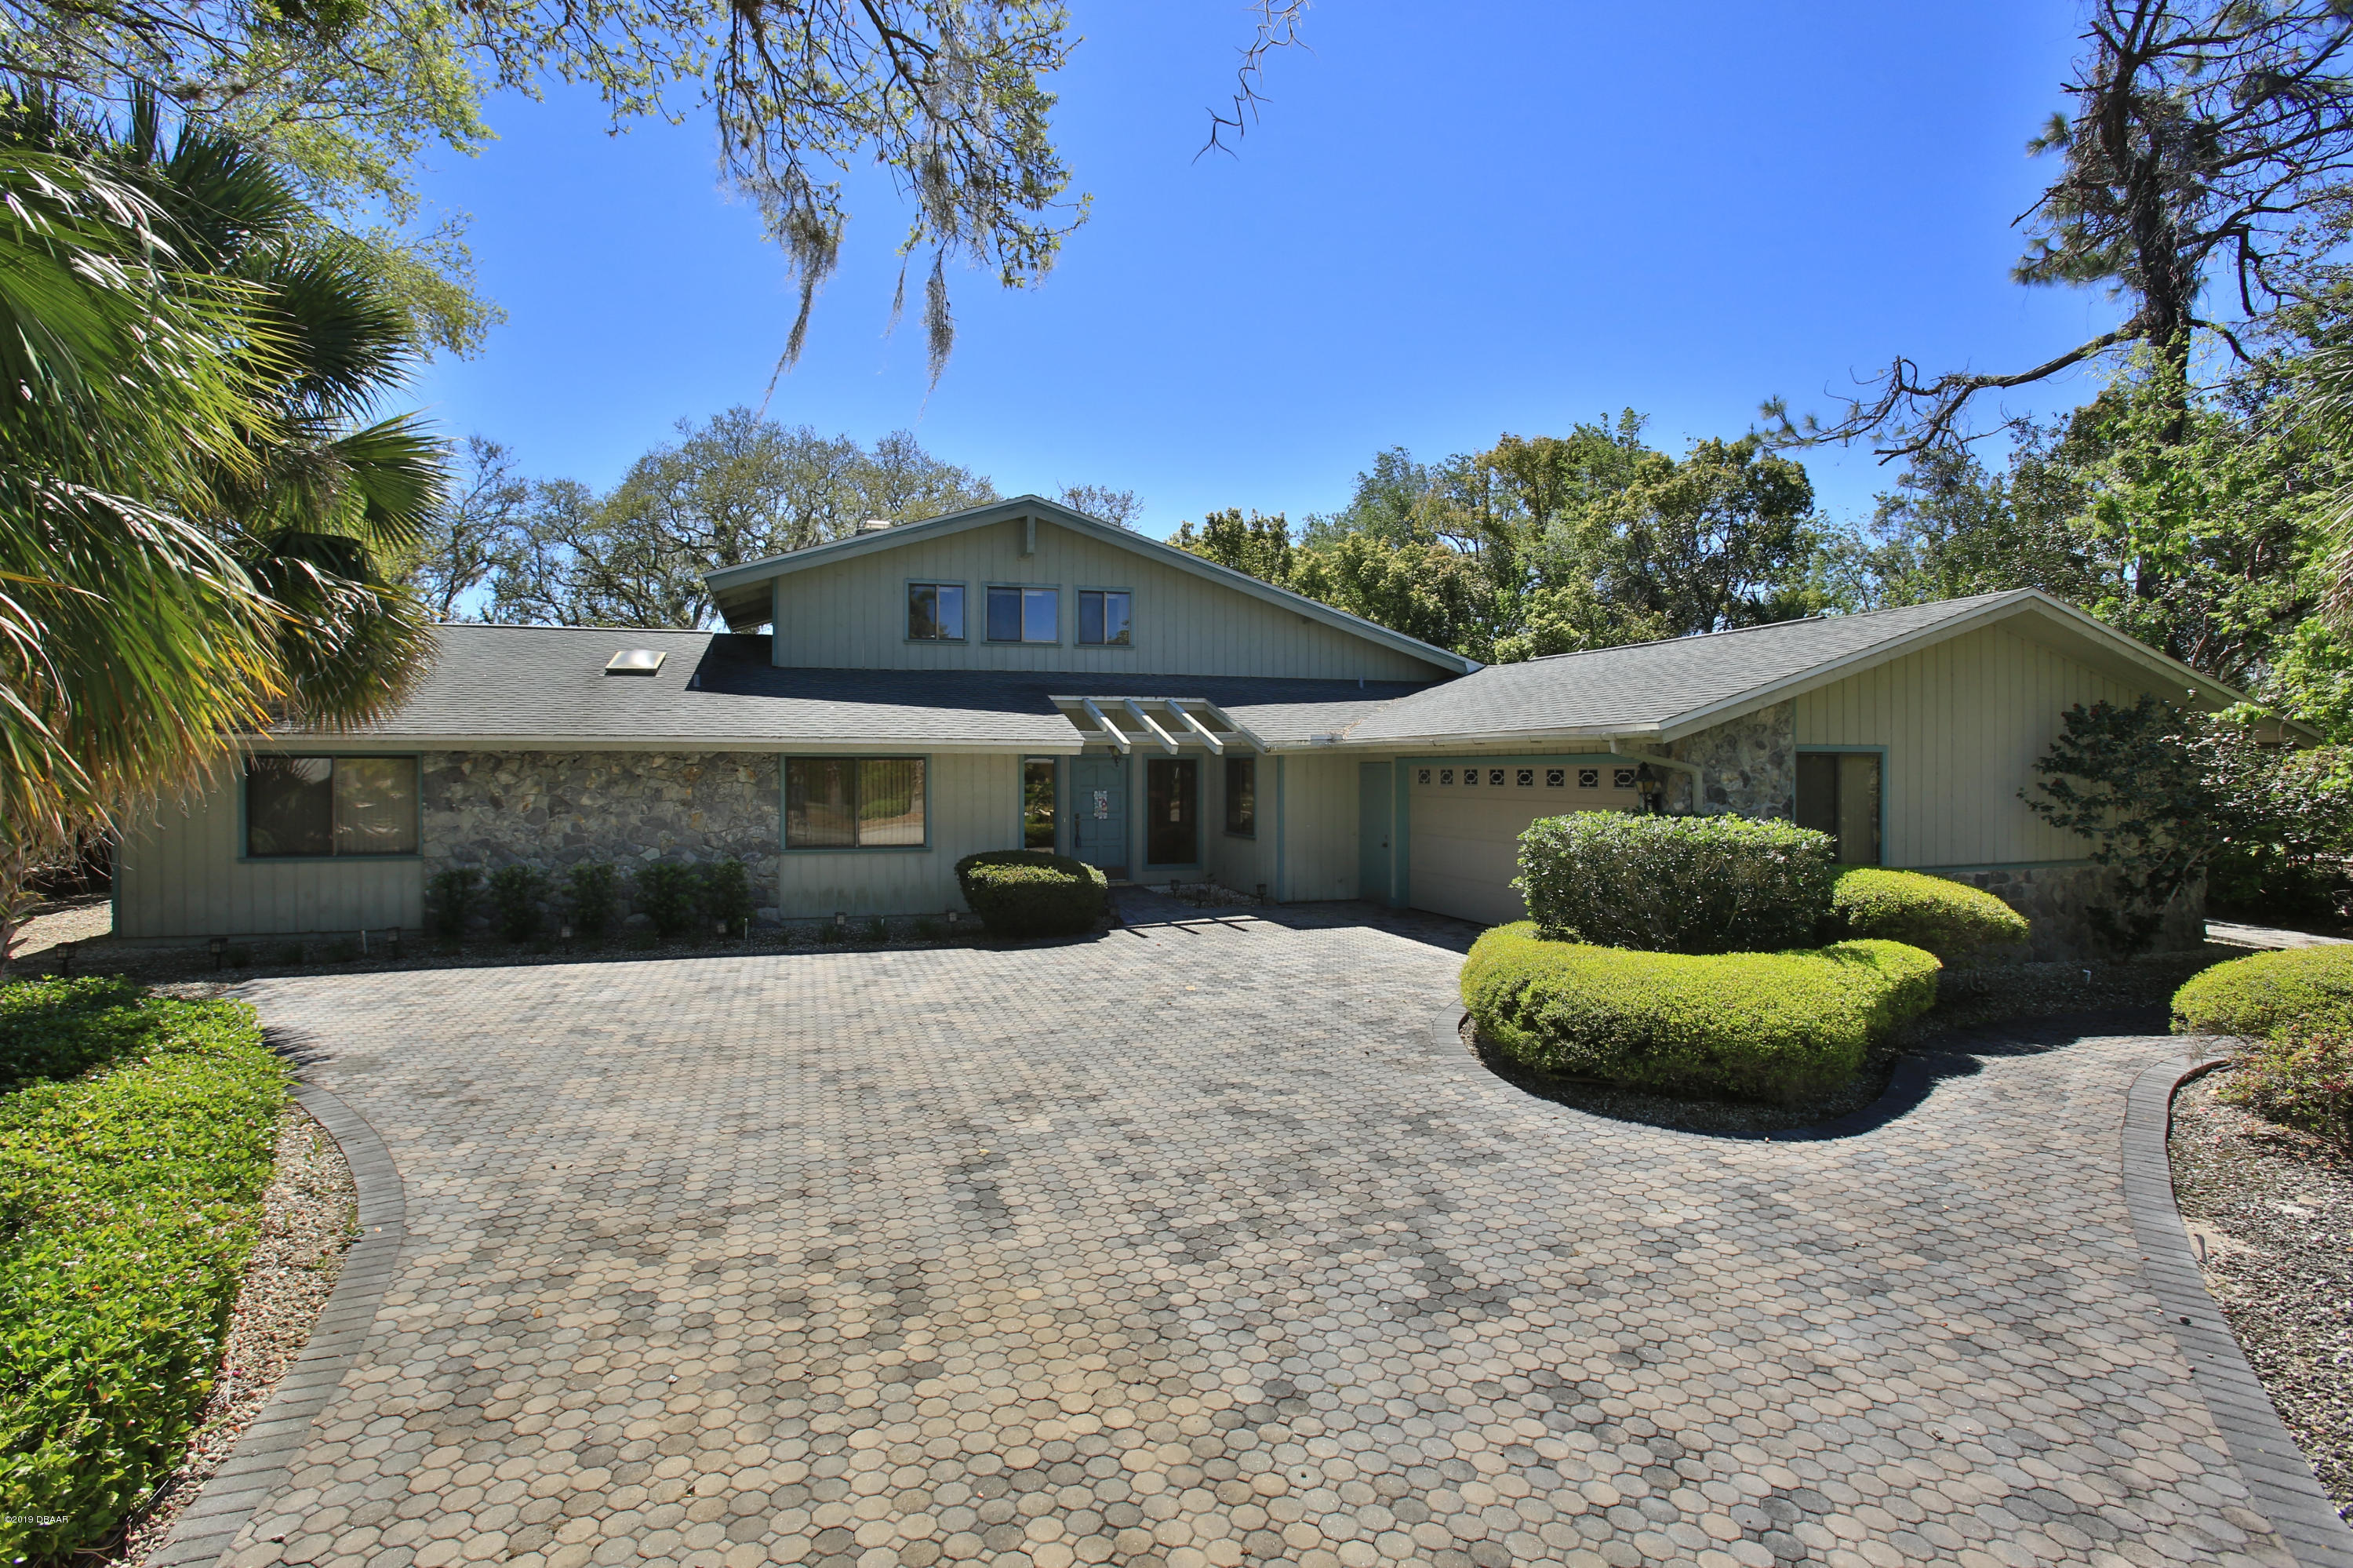 Photo of 517 Boxwood Lane, New Smyrna Beach, FL 32168